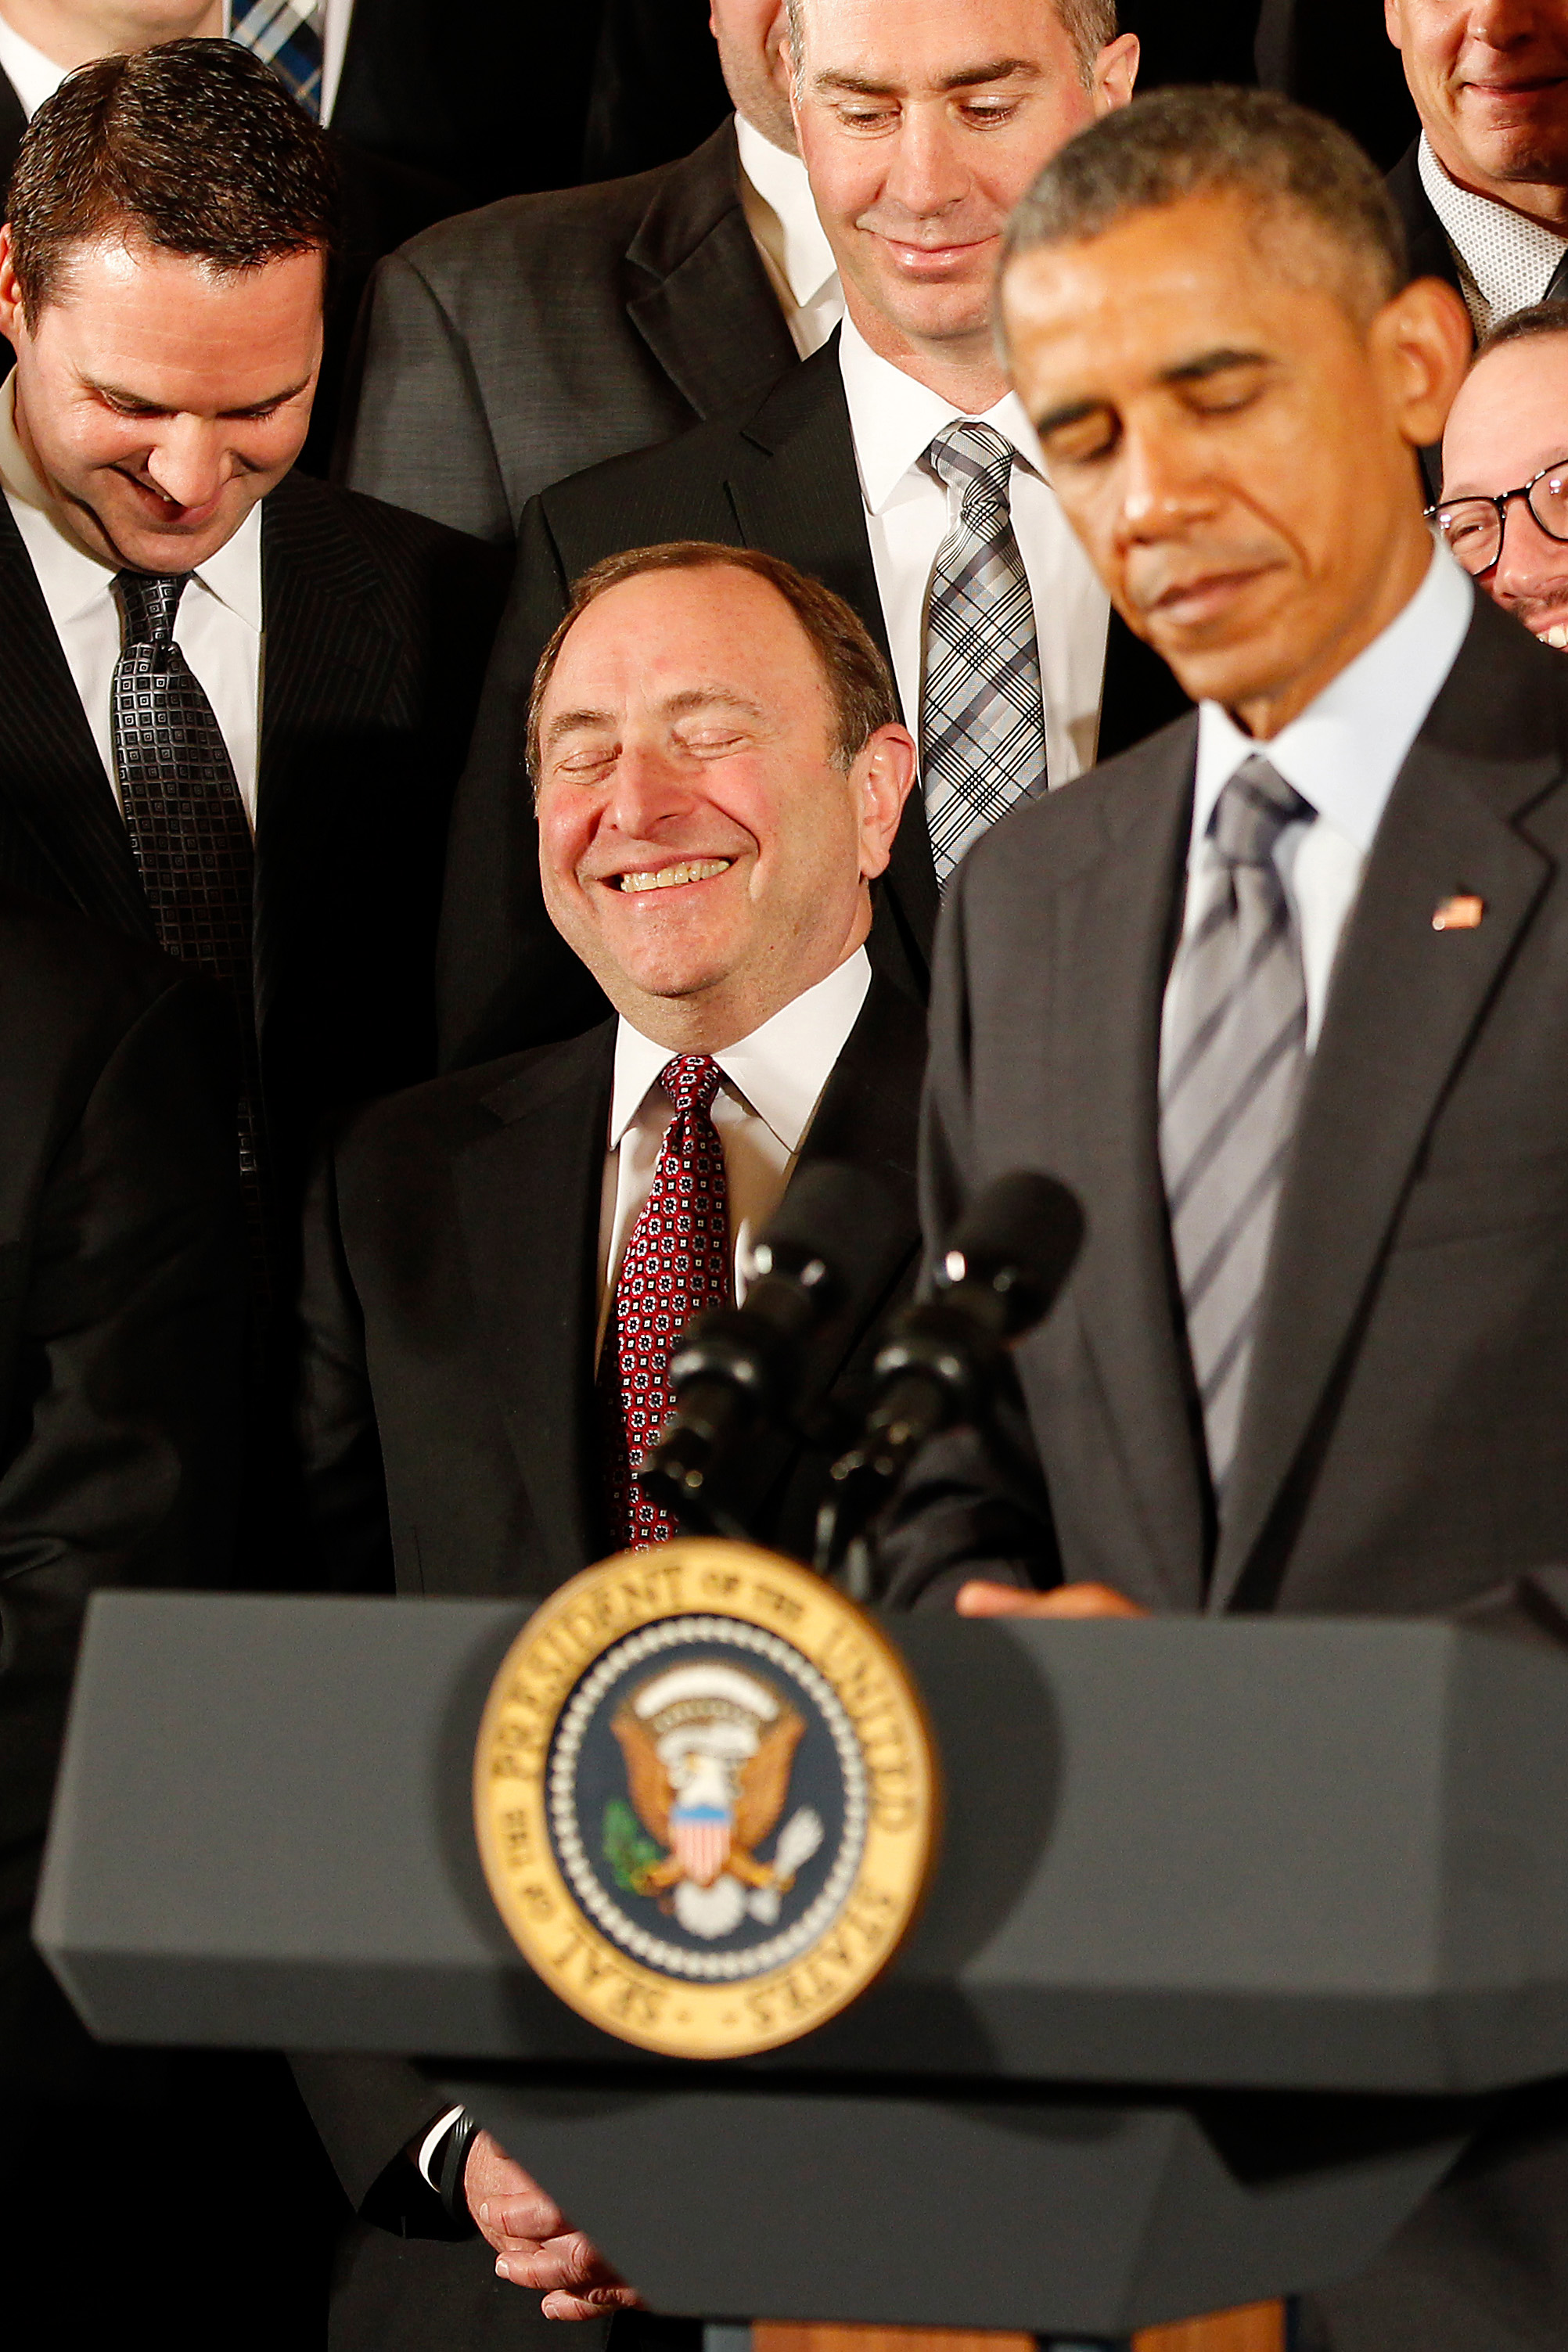 This is all Bettman's fault.